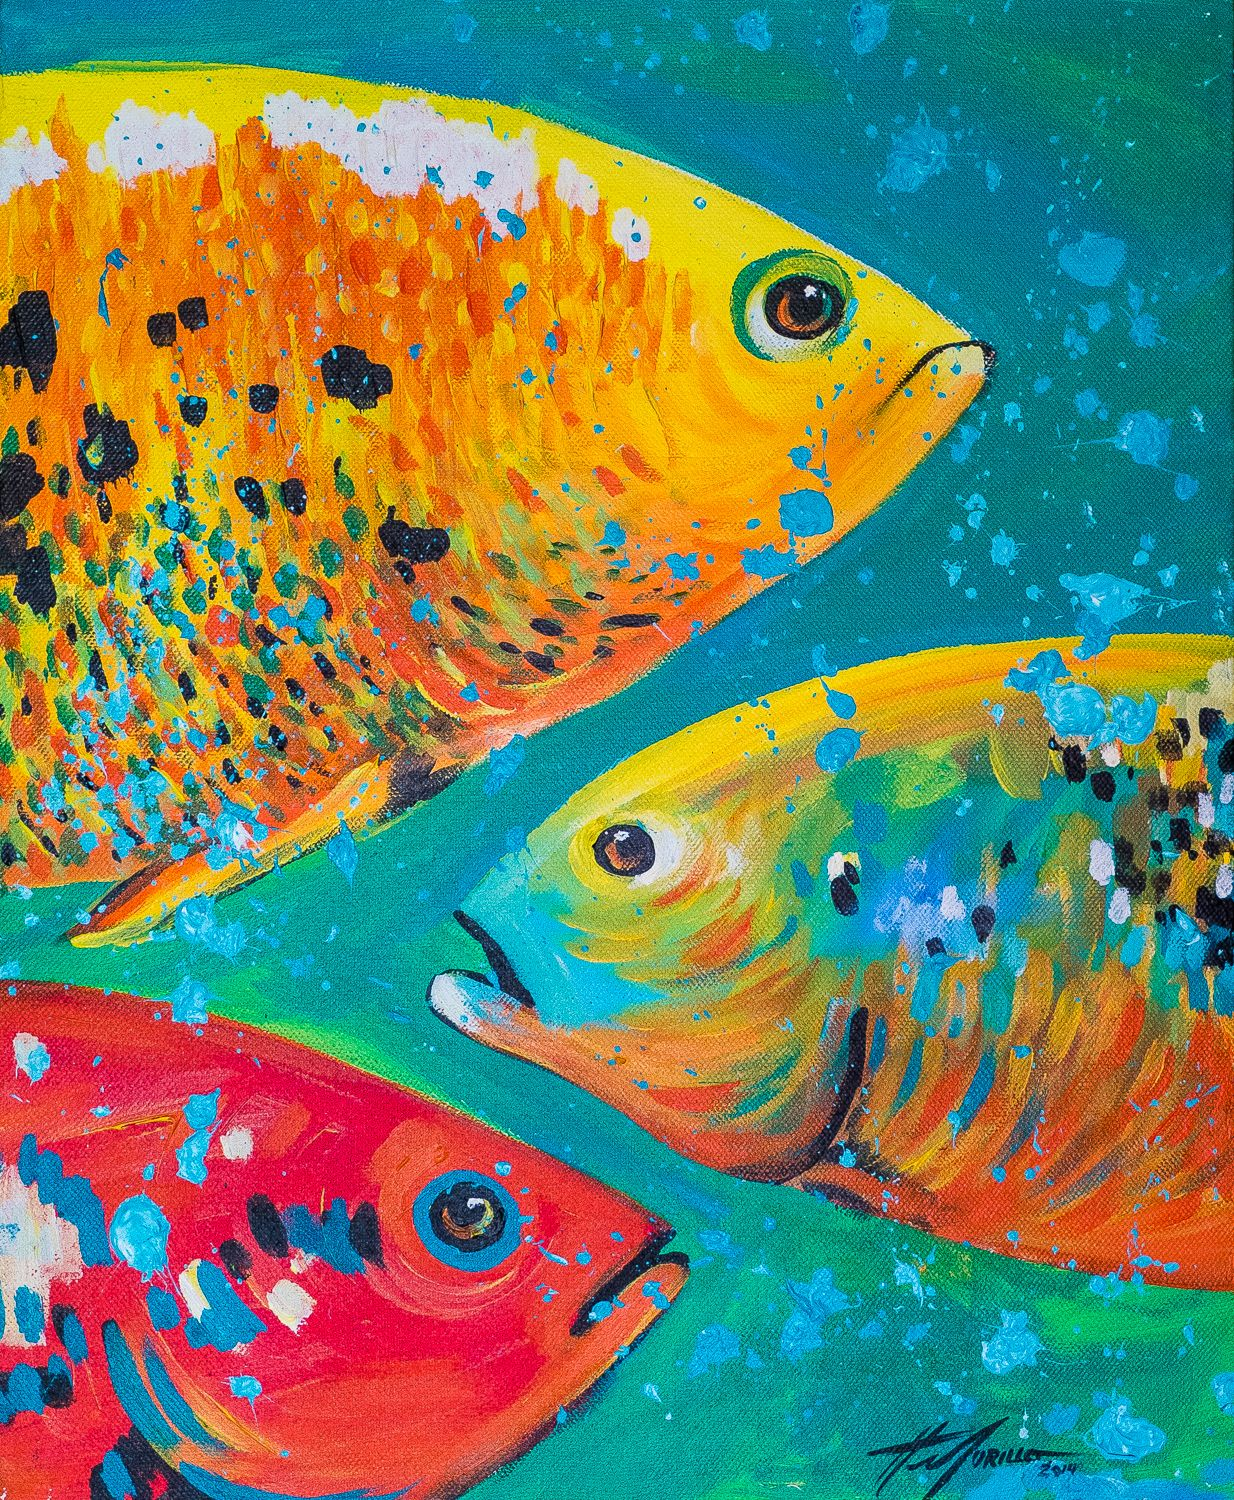 Felix murillo lleno de colores painting acrylic artwork fish art - Apariencia 2014 By Felix Murillo Painting Acrylic Acrylic Paint Used In Order To Give A Sense Of It Being Soft To The Touch